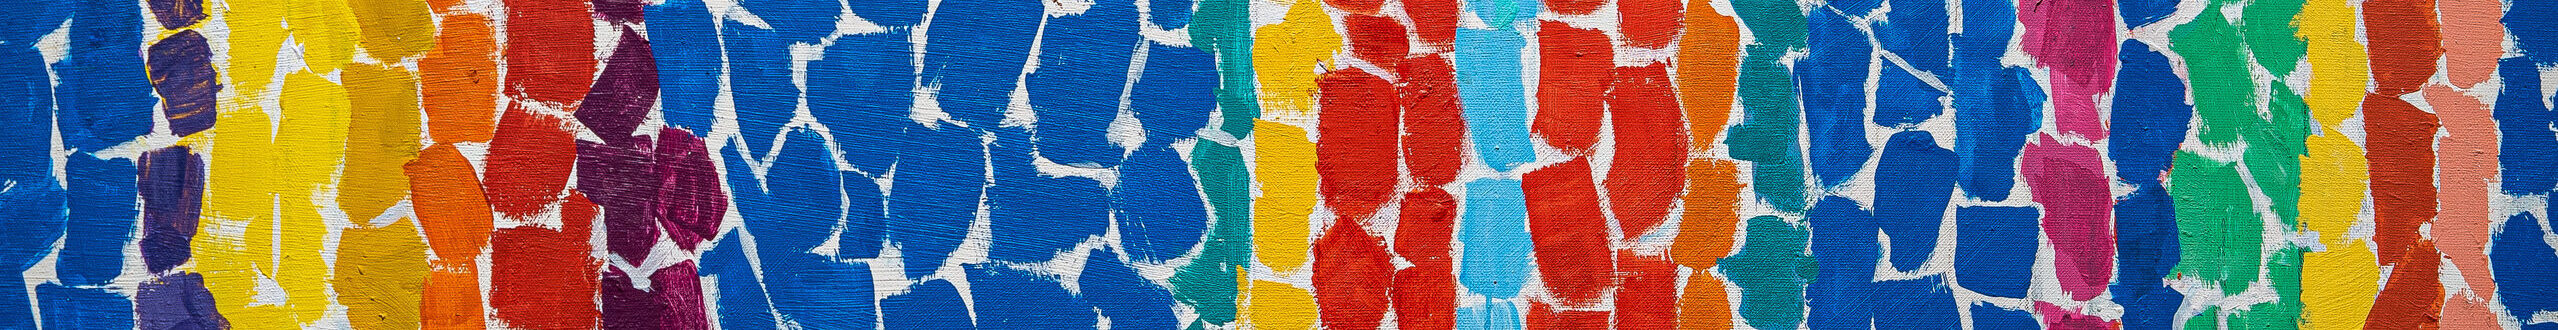 Abstract painting composed of brightly colored, lozenge-shaped brushstrokes in vertical stripes of navy, purple, turquoise, yellow, orange and red.The overall effect is as if the painting was collaged out of torn pieces of paper, with the white of the canvas showing through.